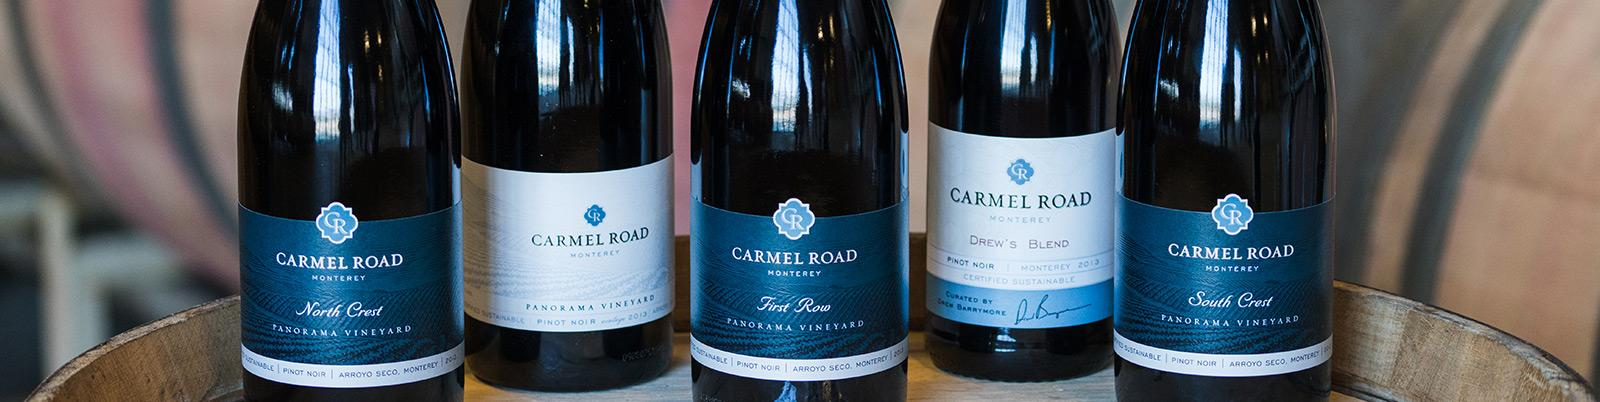 Carmel Road wines